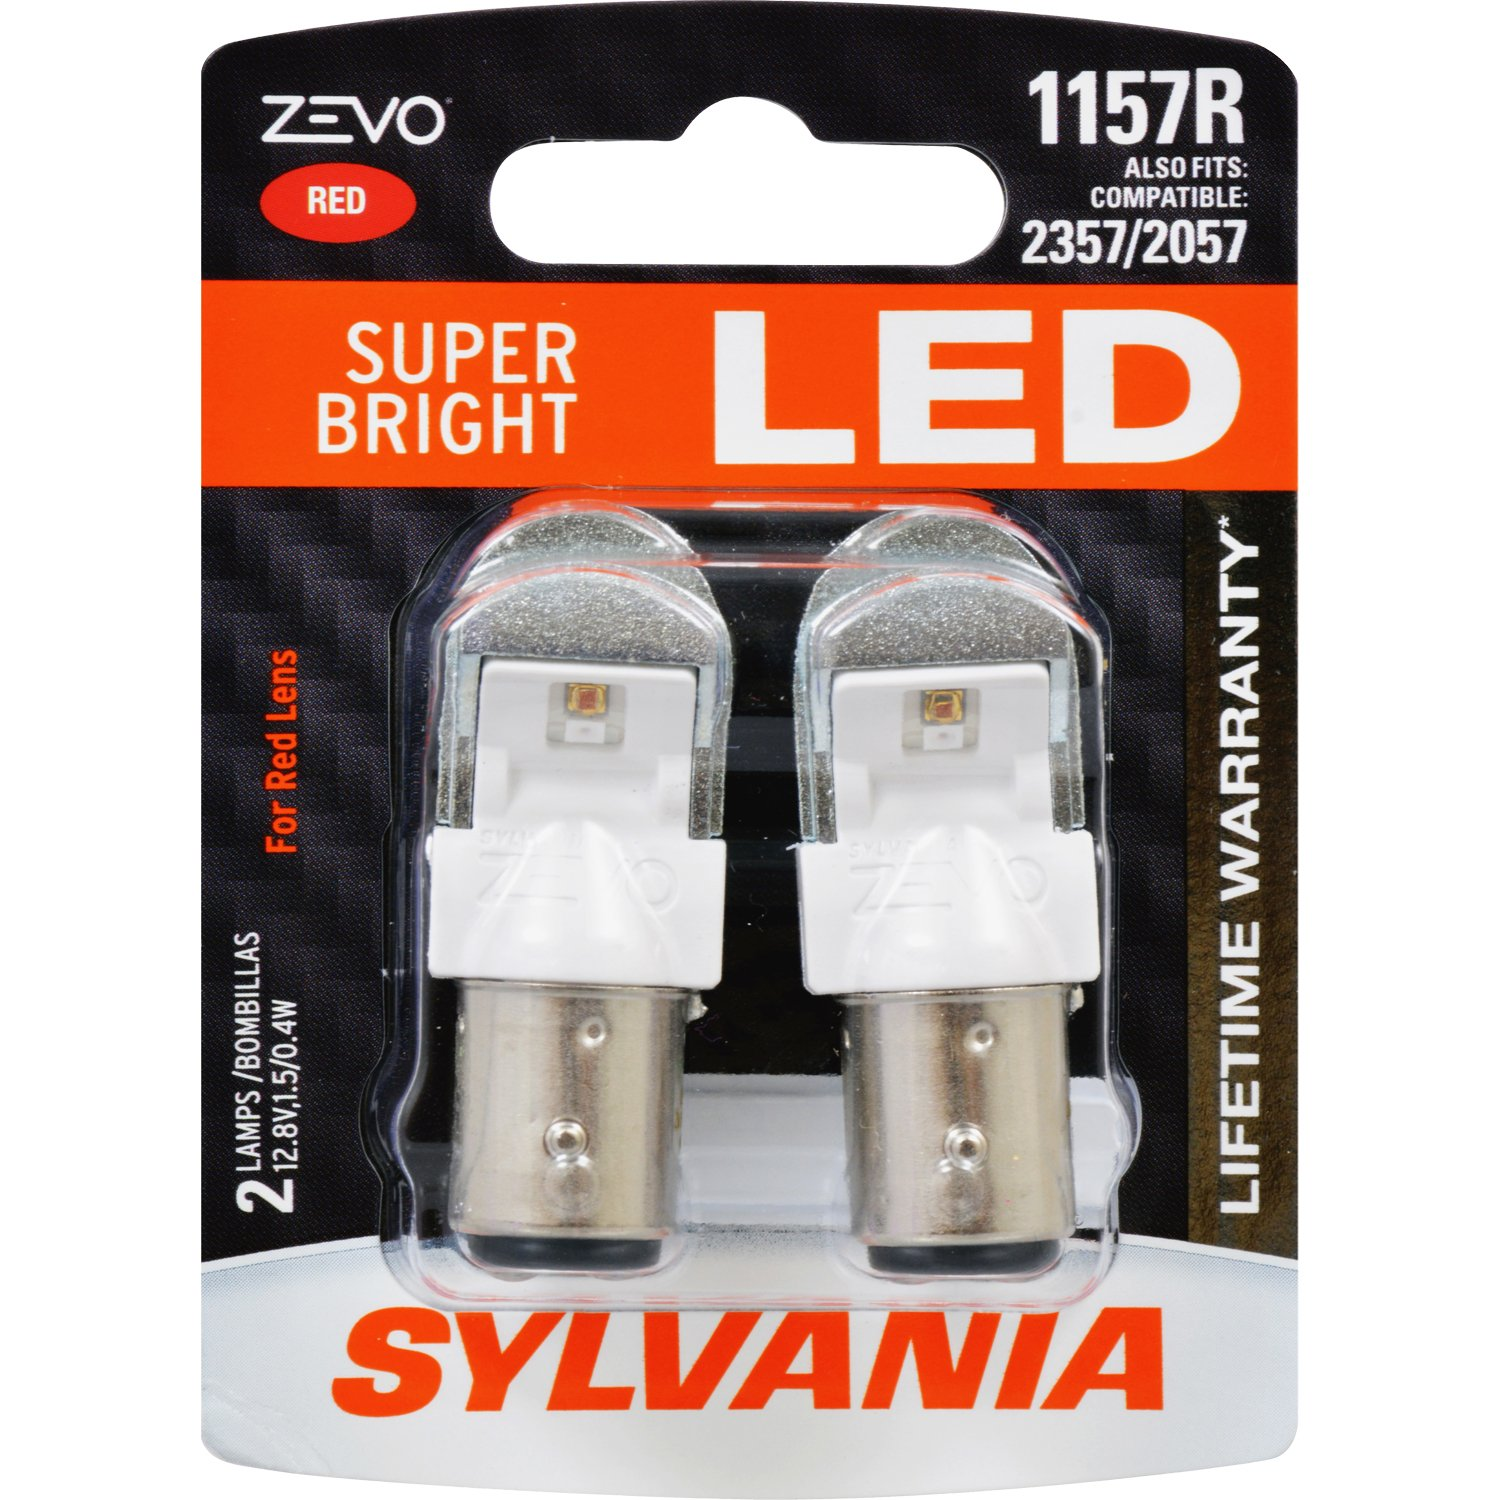 SYLVANIA ZEVO 1156 Amber LED Bulb, (Contains 2 Bulbs) 1156ALED.BP2